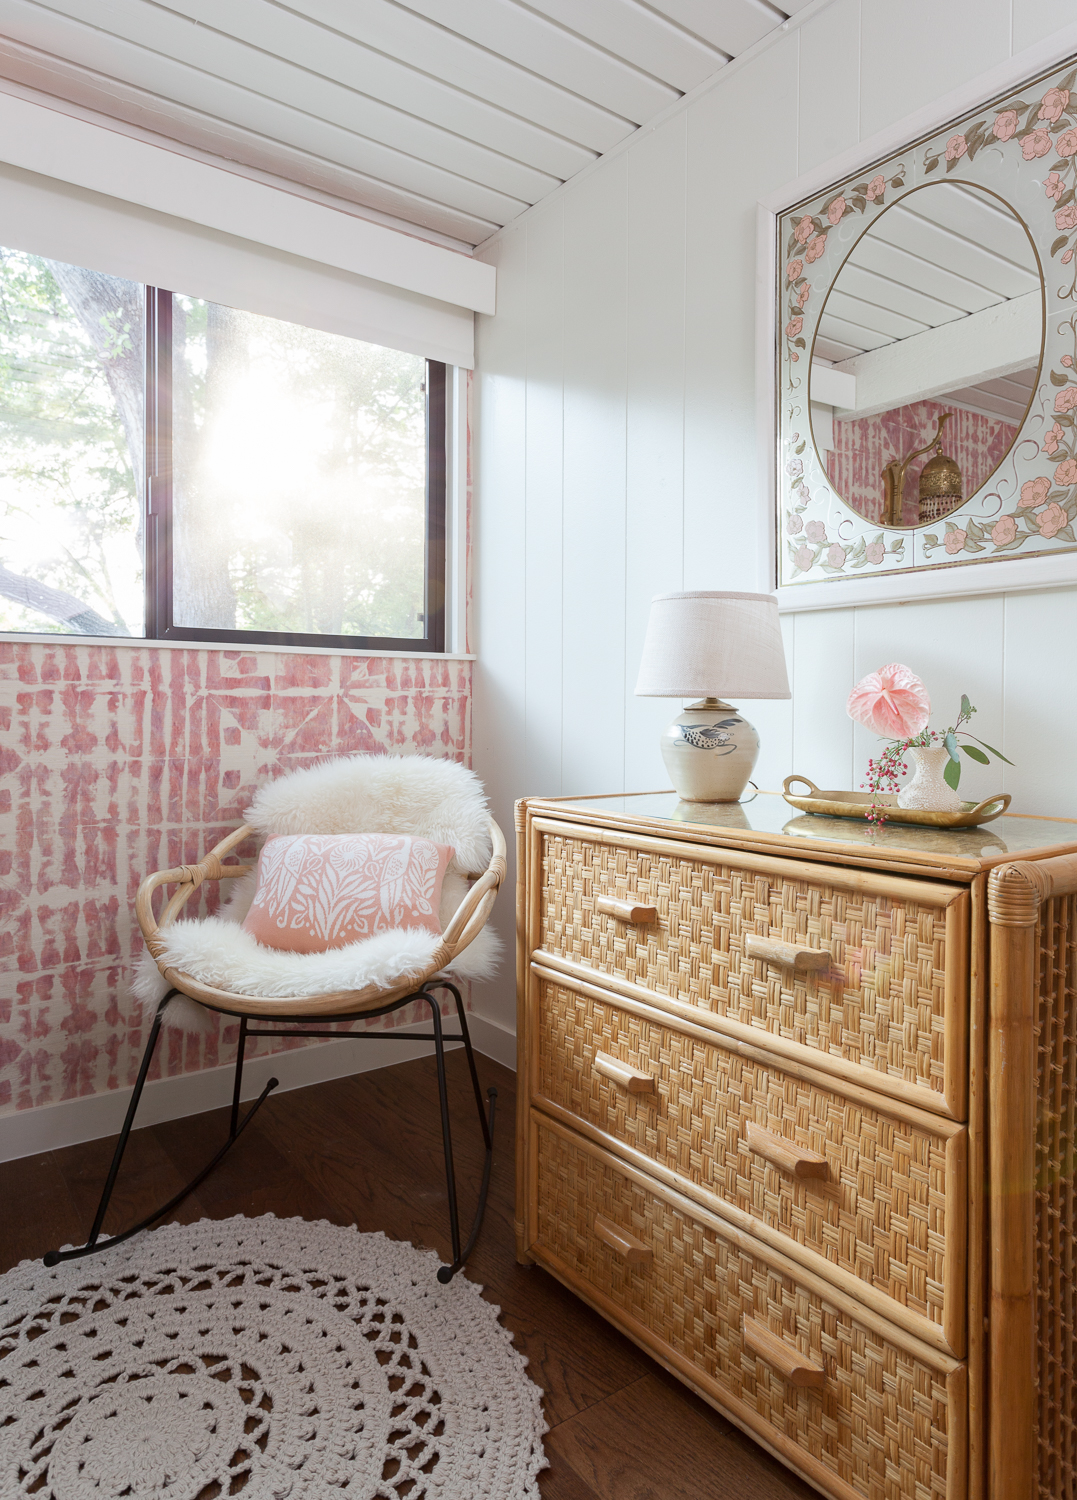 erin williamson design, nersery design, eskayel wallpaper, urban outfitters, granny chic, baby boho, lakehouse, 50s design, grasscloth wallpaper, pink wallpaper, shade store